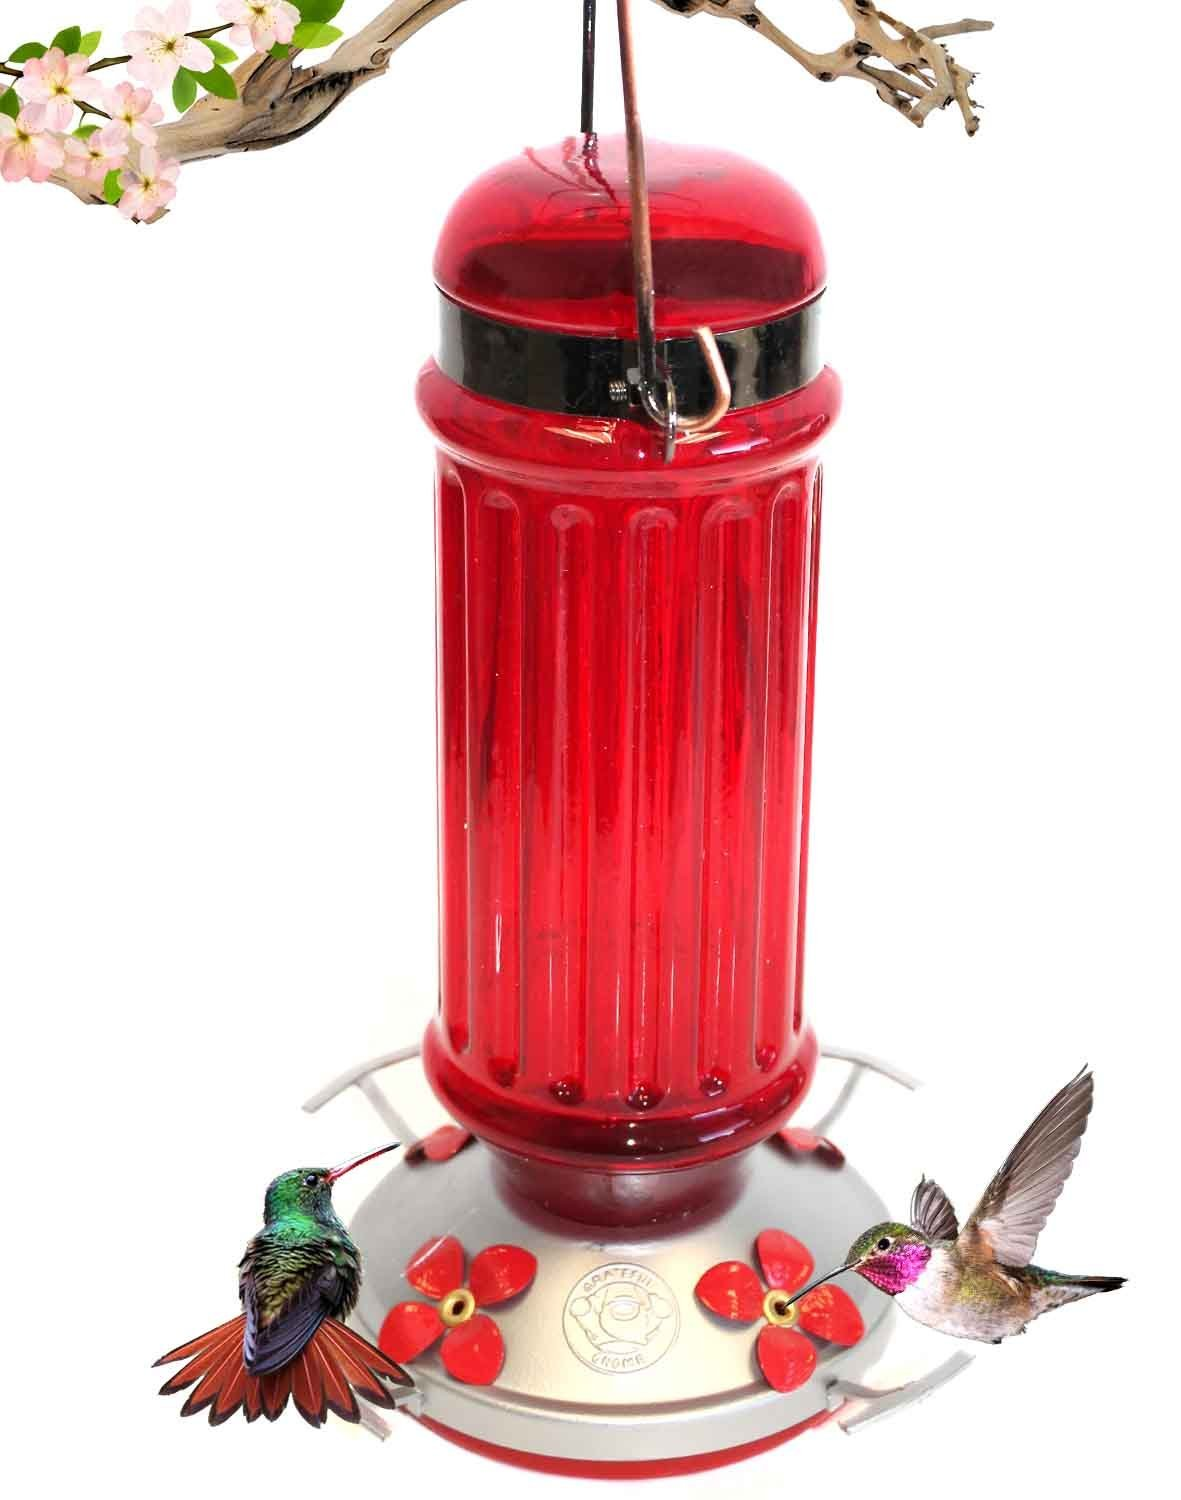 Grateful Gnome - Hummingbird Feeder - Red Glass Bottle with Metal Clamp Hanger - 28 Fluid Ounces by Grateful Gnome